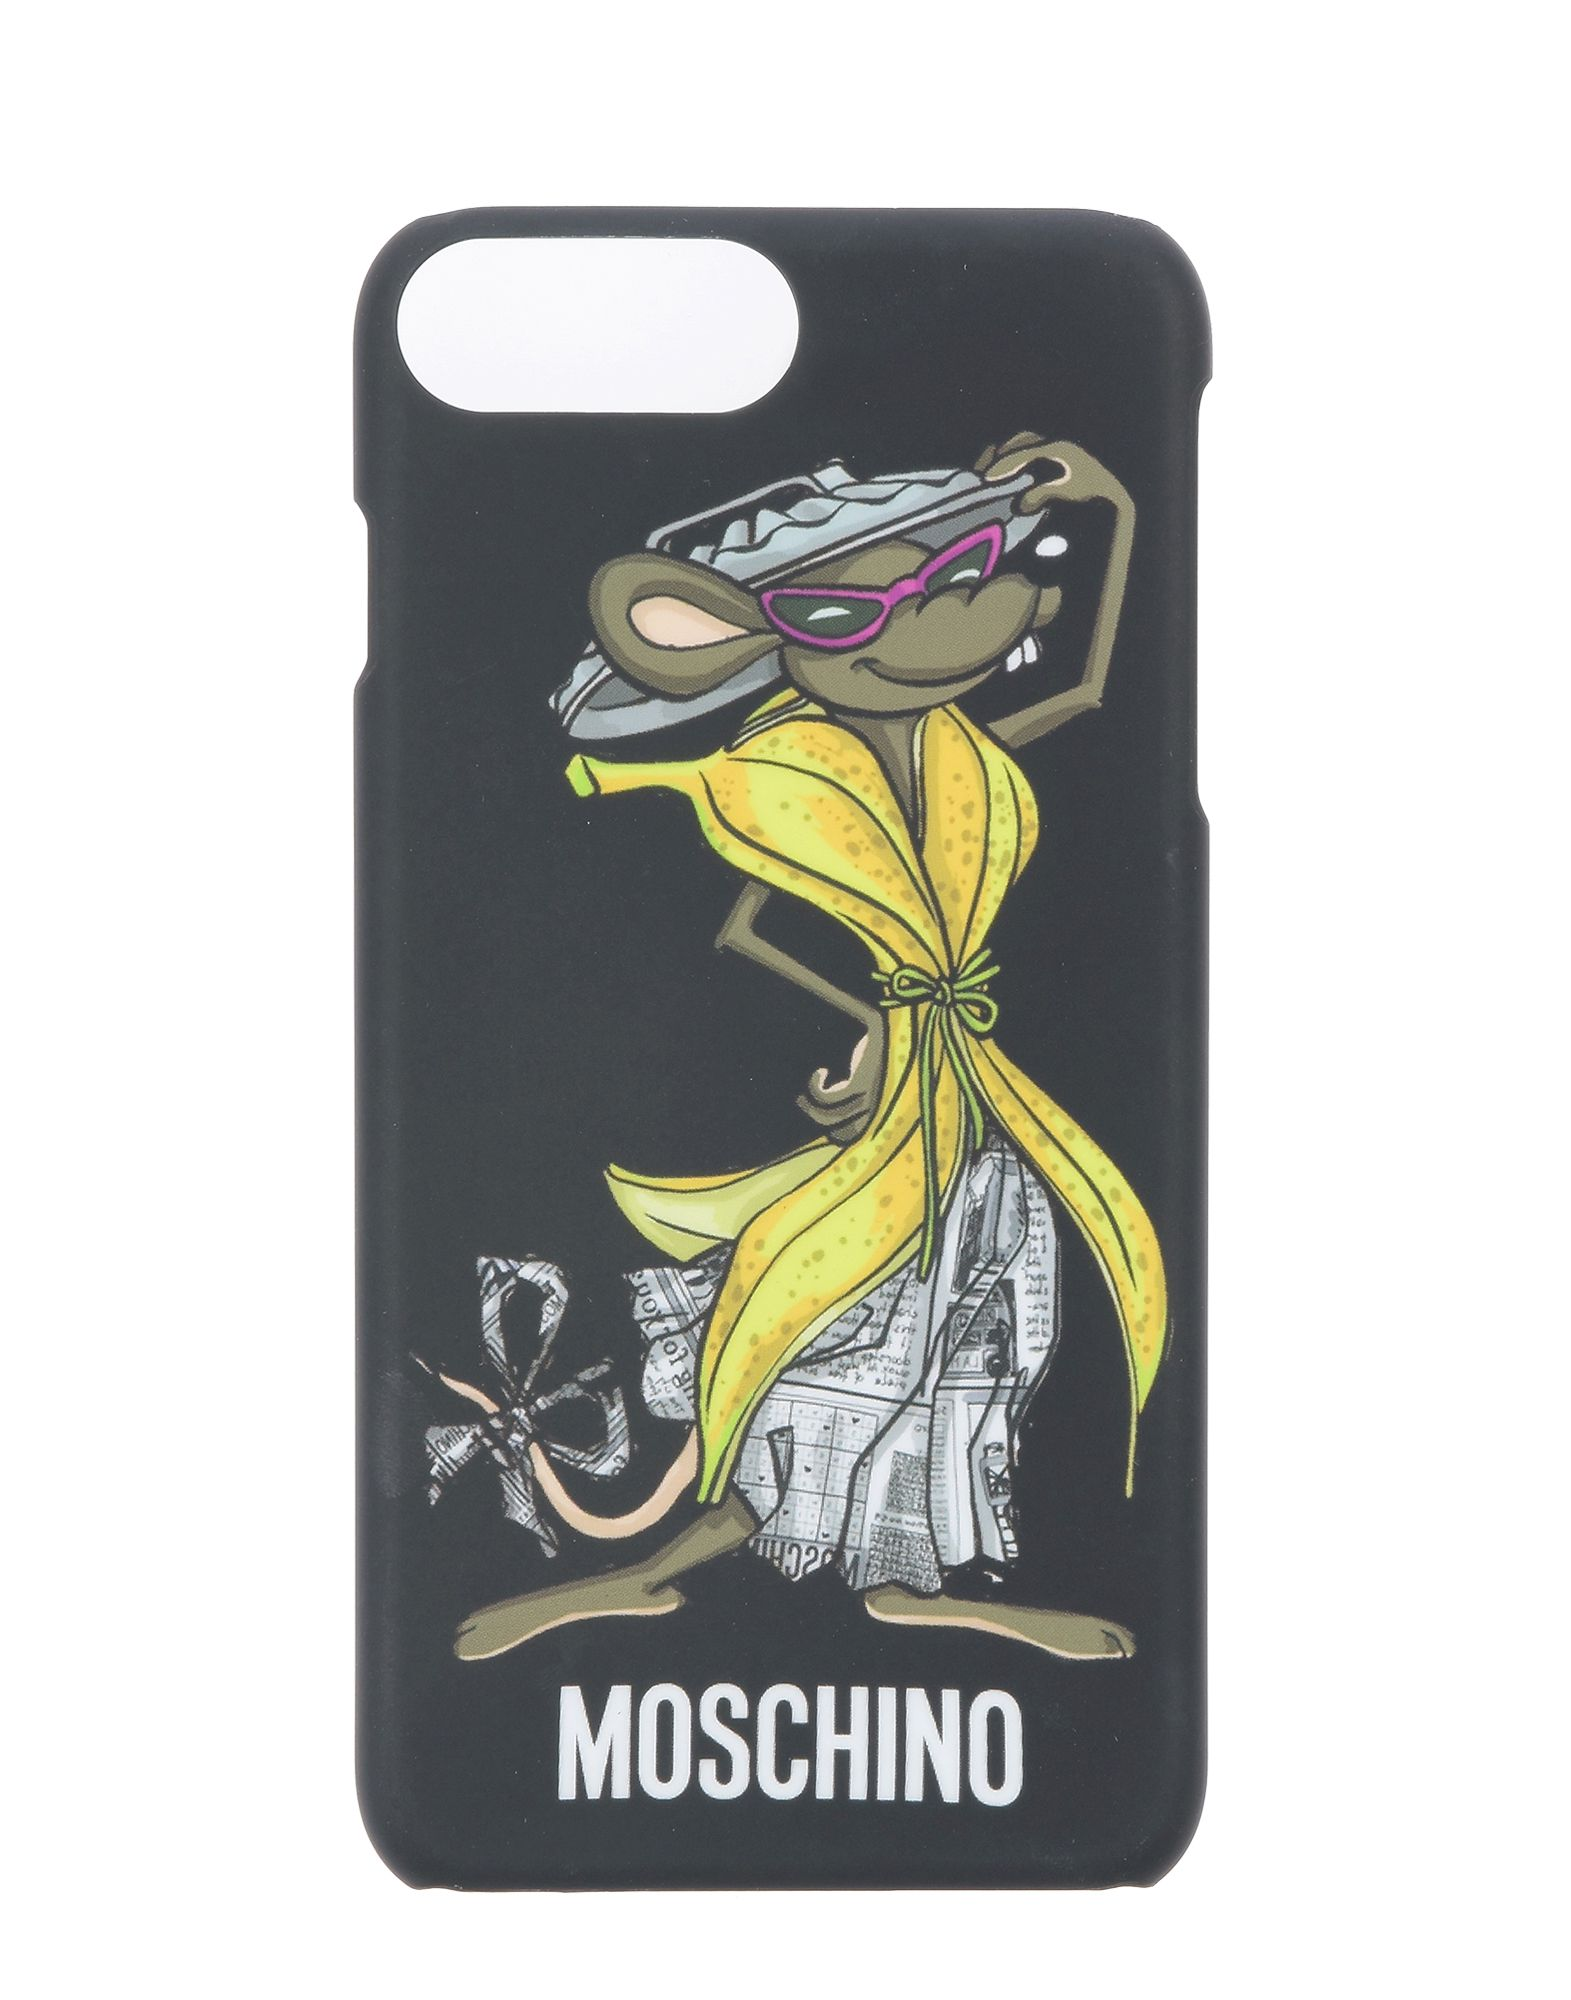 MOSCHINO Чехол чехол для iphone 6 6s plus